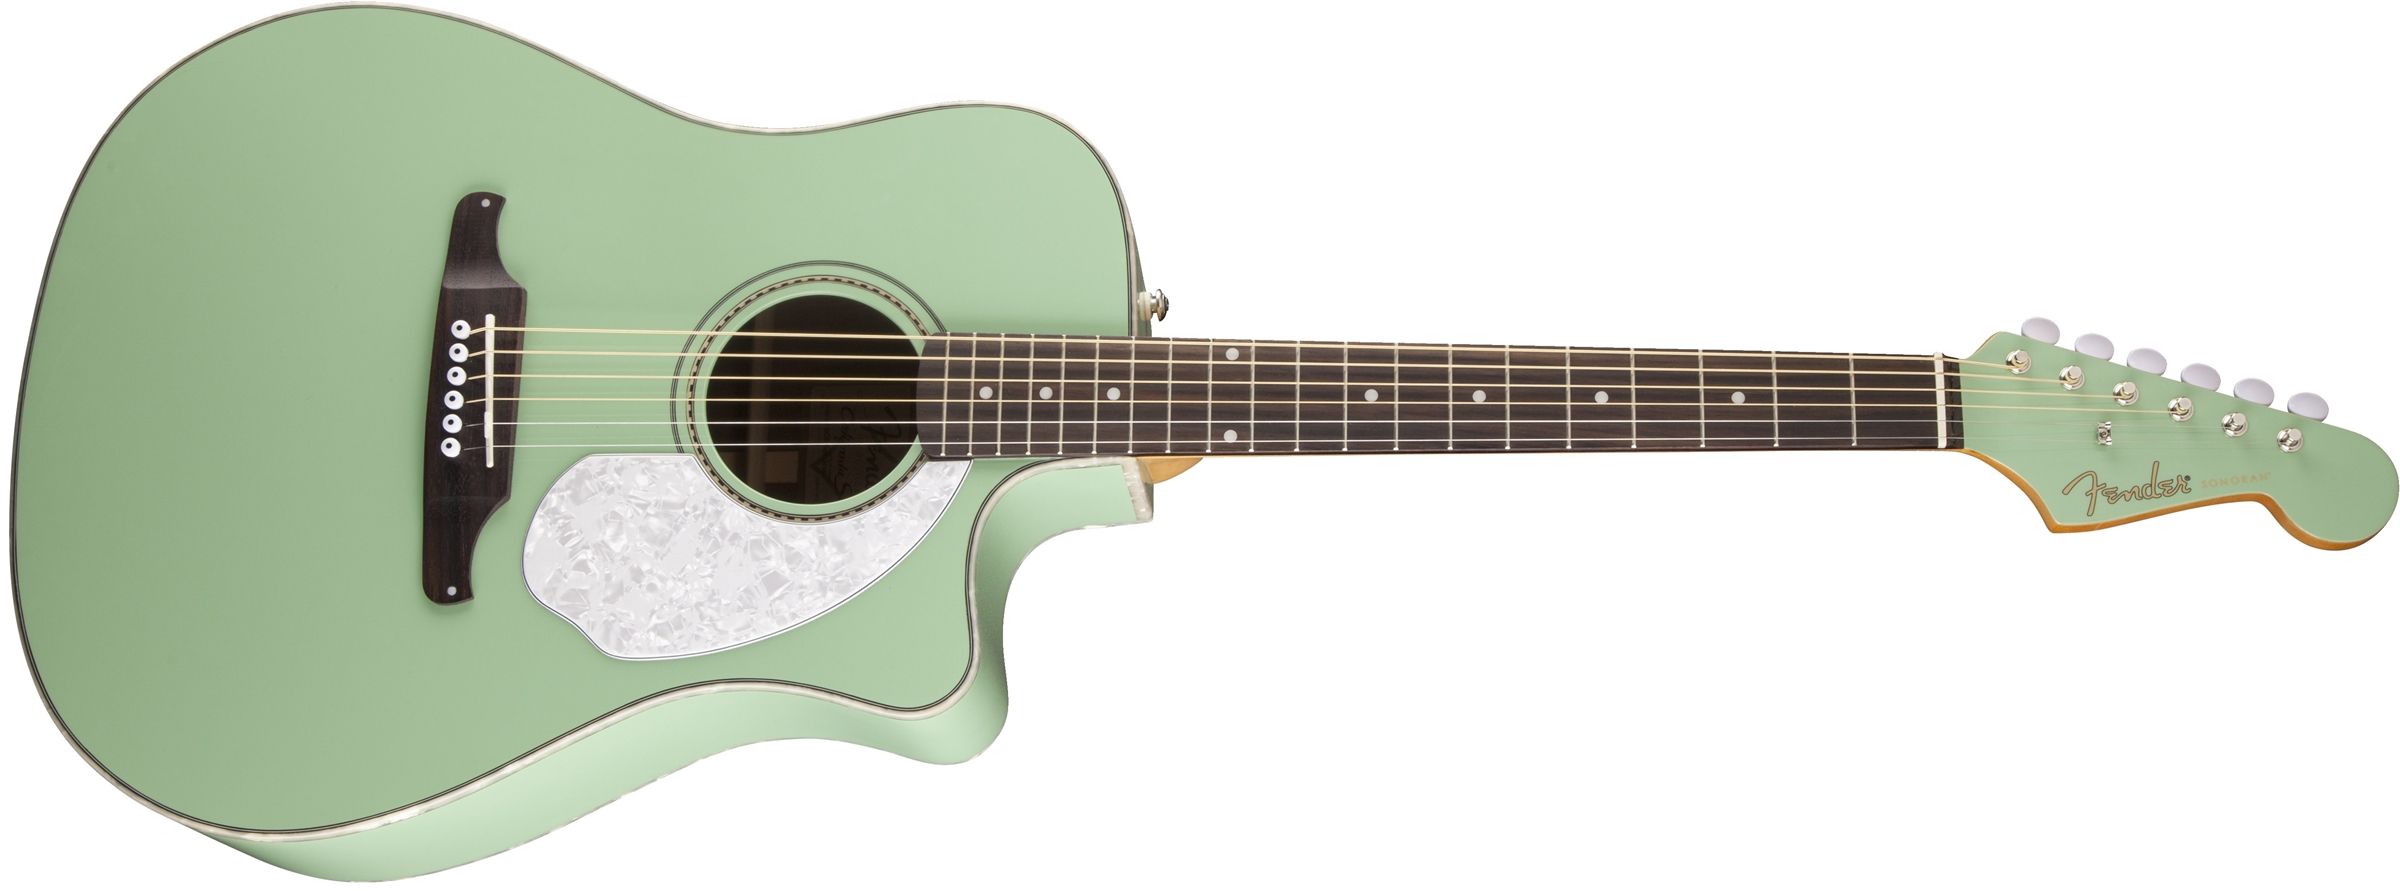 fender sonoran sce surf green with matching headstock. Black Bedroom Furniture Sets. Home Design Ideas